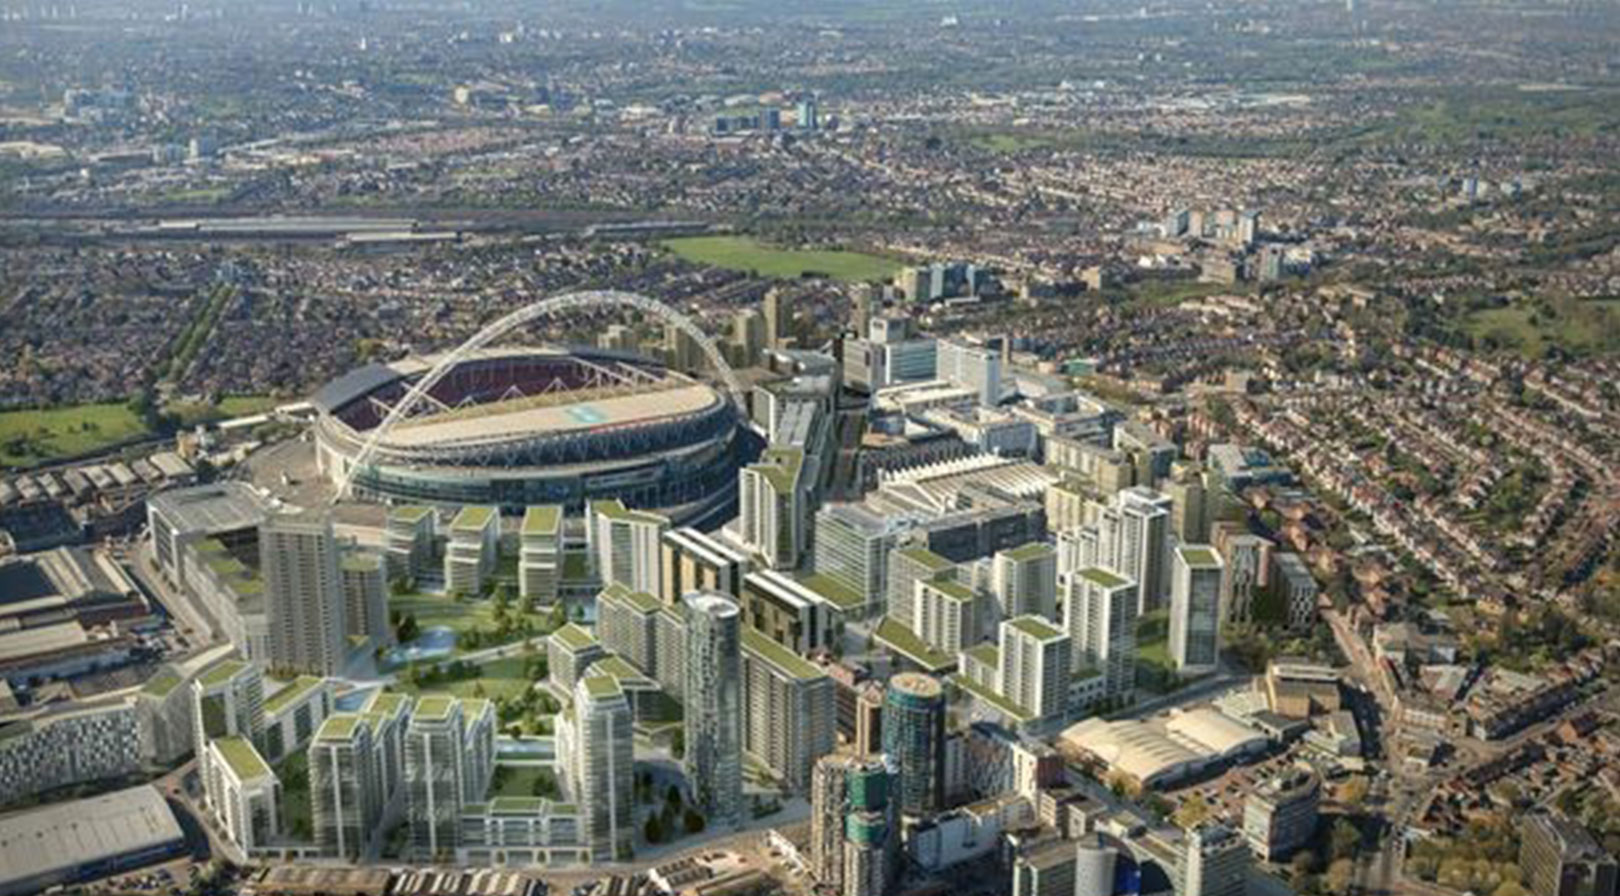 Plots NW09 & NW10, Wembley Masterplan